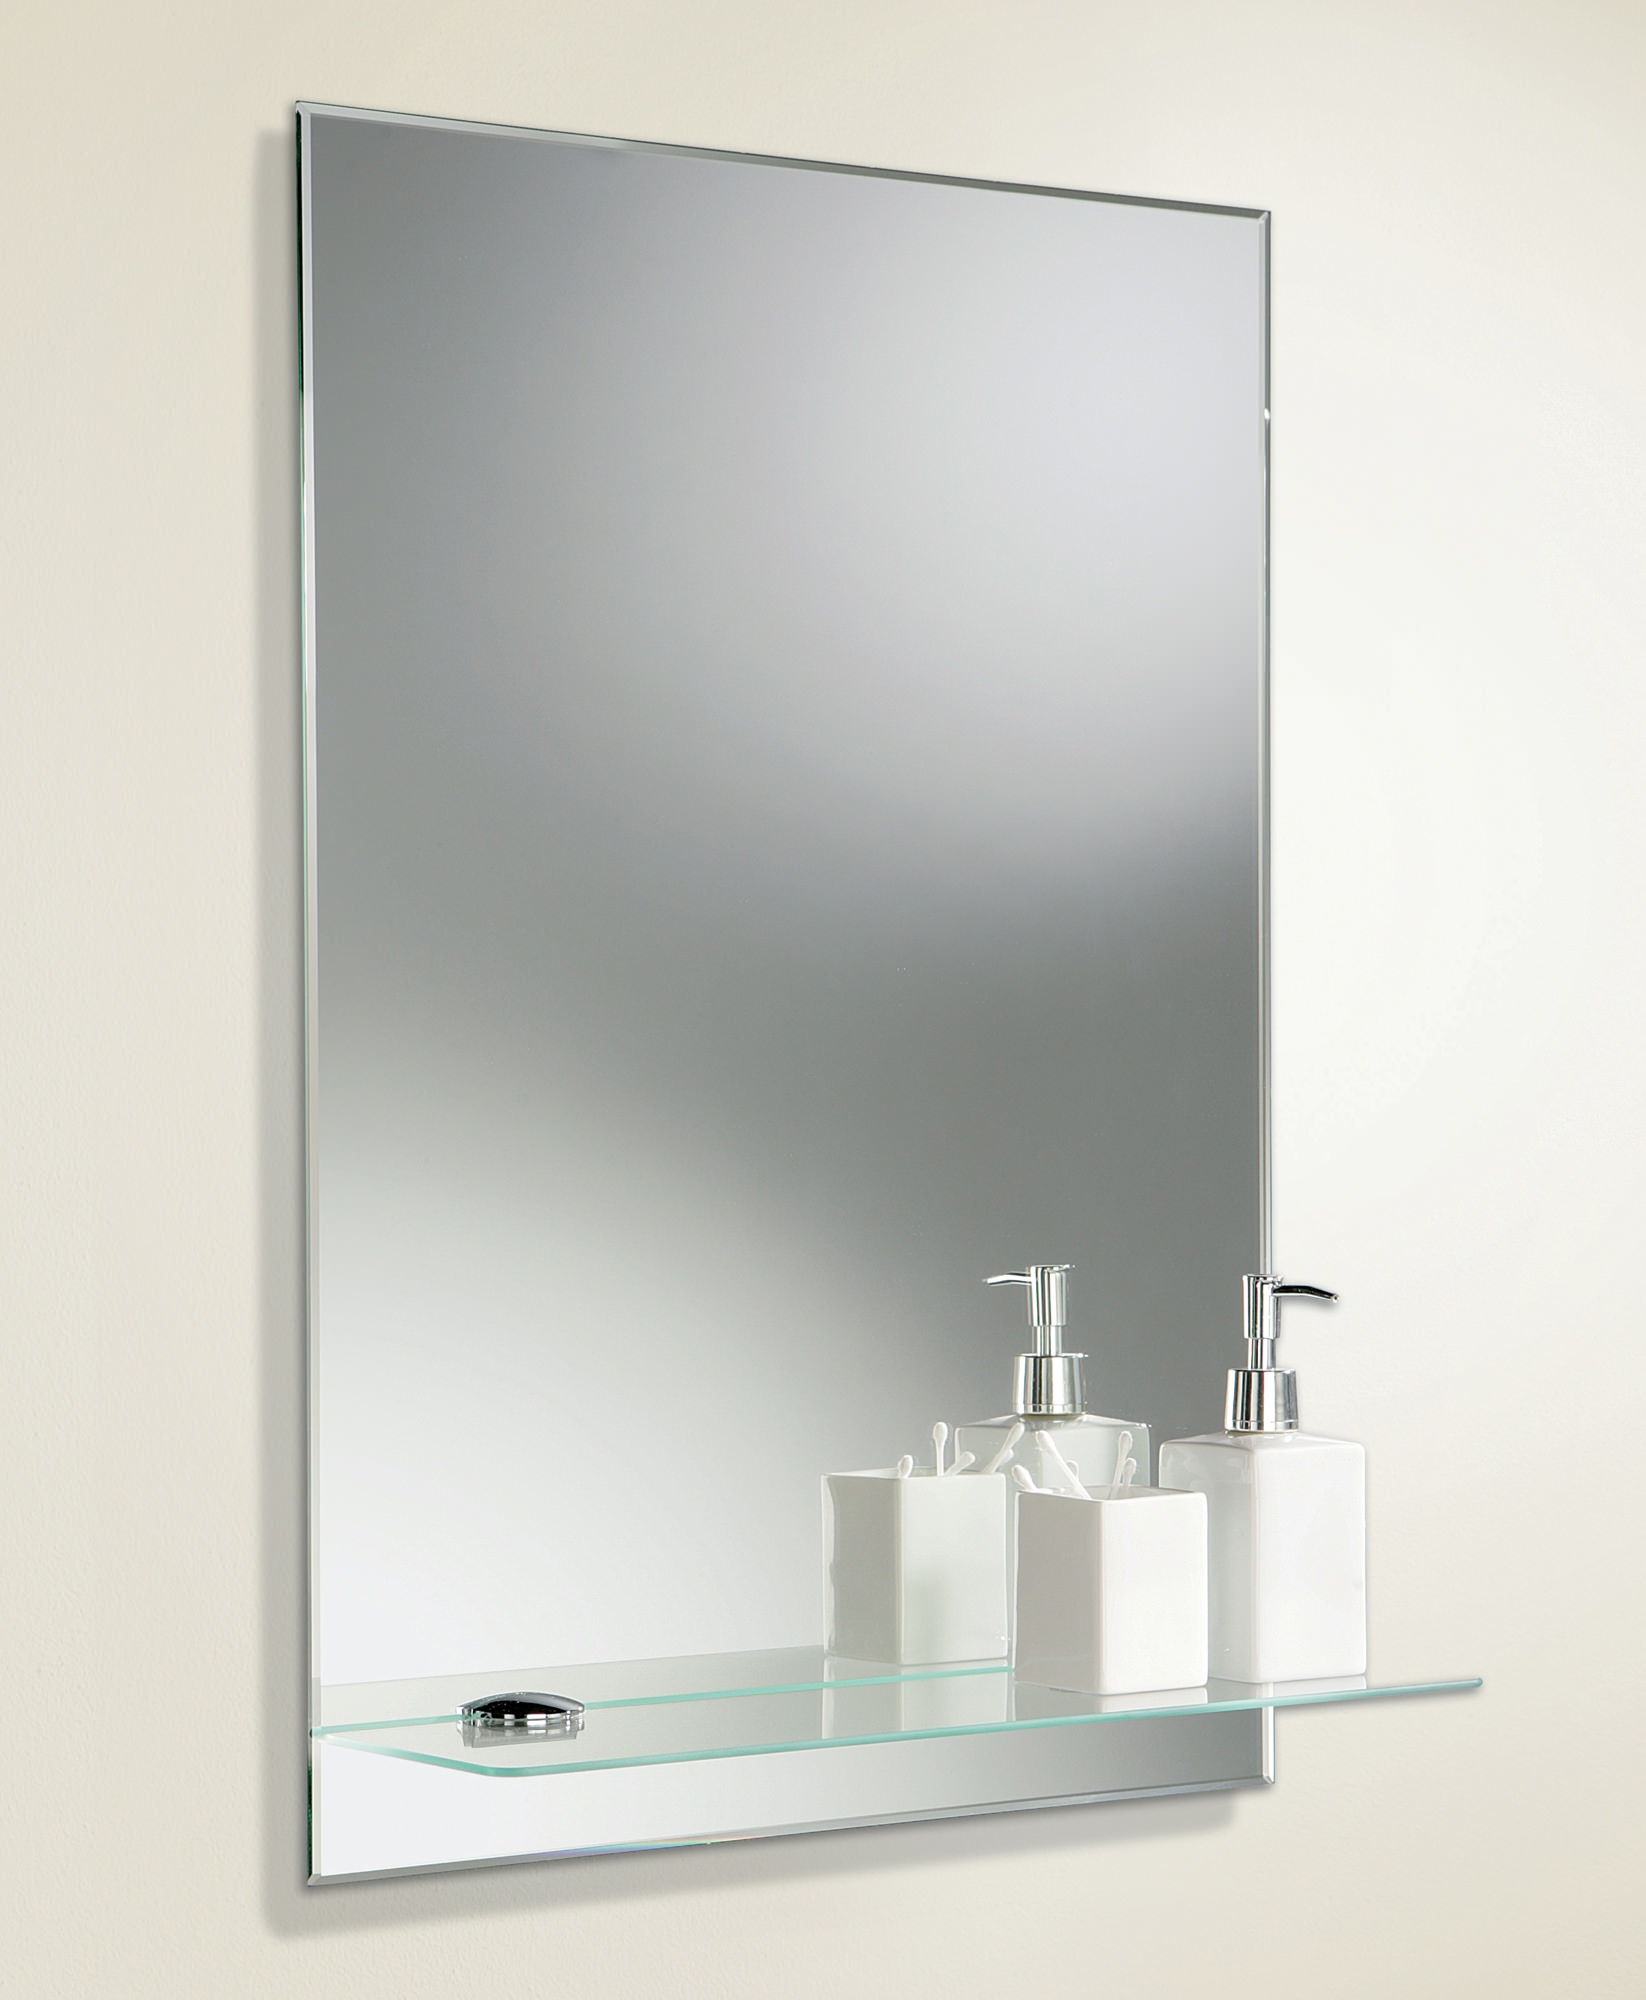 Hib Del Rectangular Bevelled Edge Mirror With Glass Shelf 72026000 Within Mirror Bevelled Edge (Image 7 of 15)